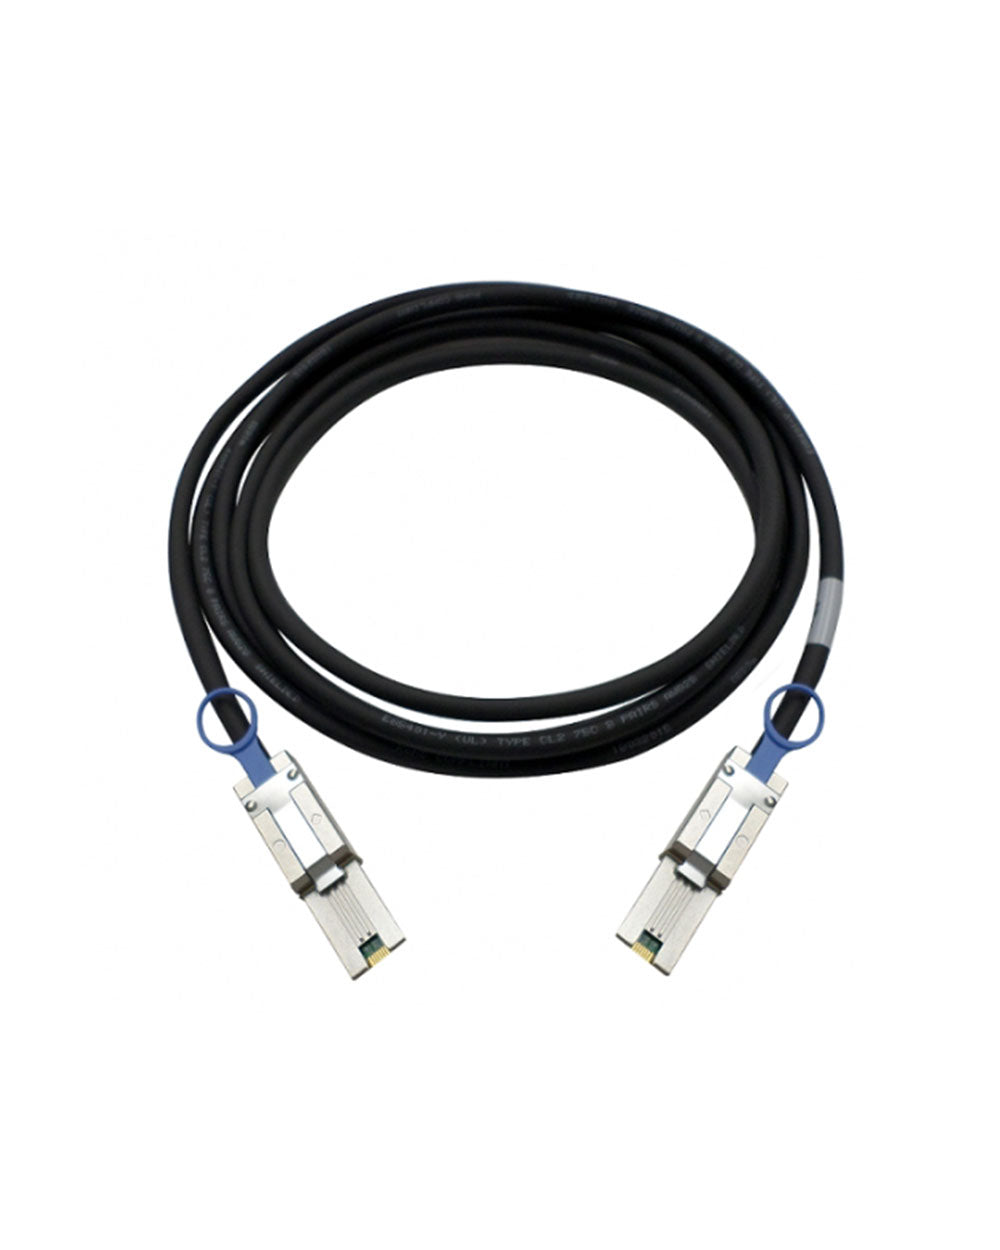 QNAP Mini SAS 6G cable (SFF-8088), 3.0m